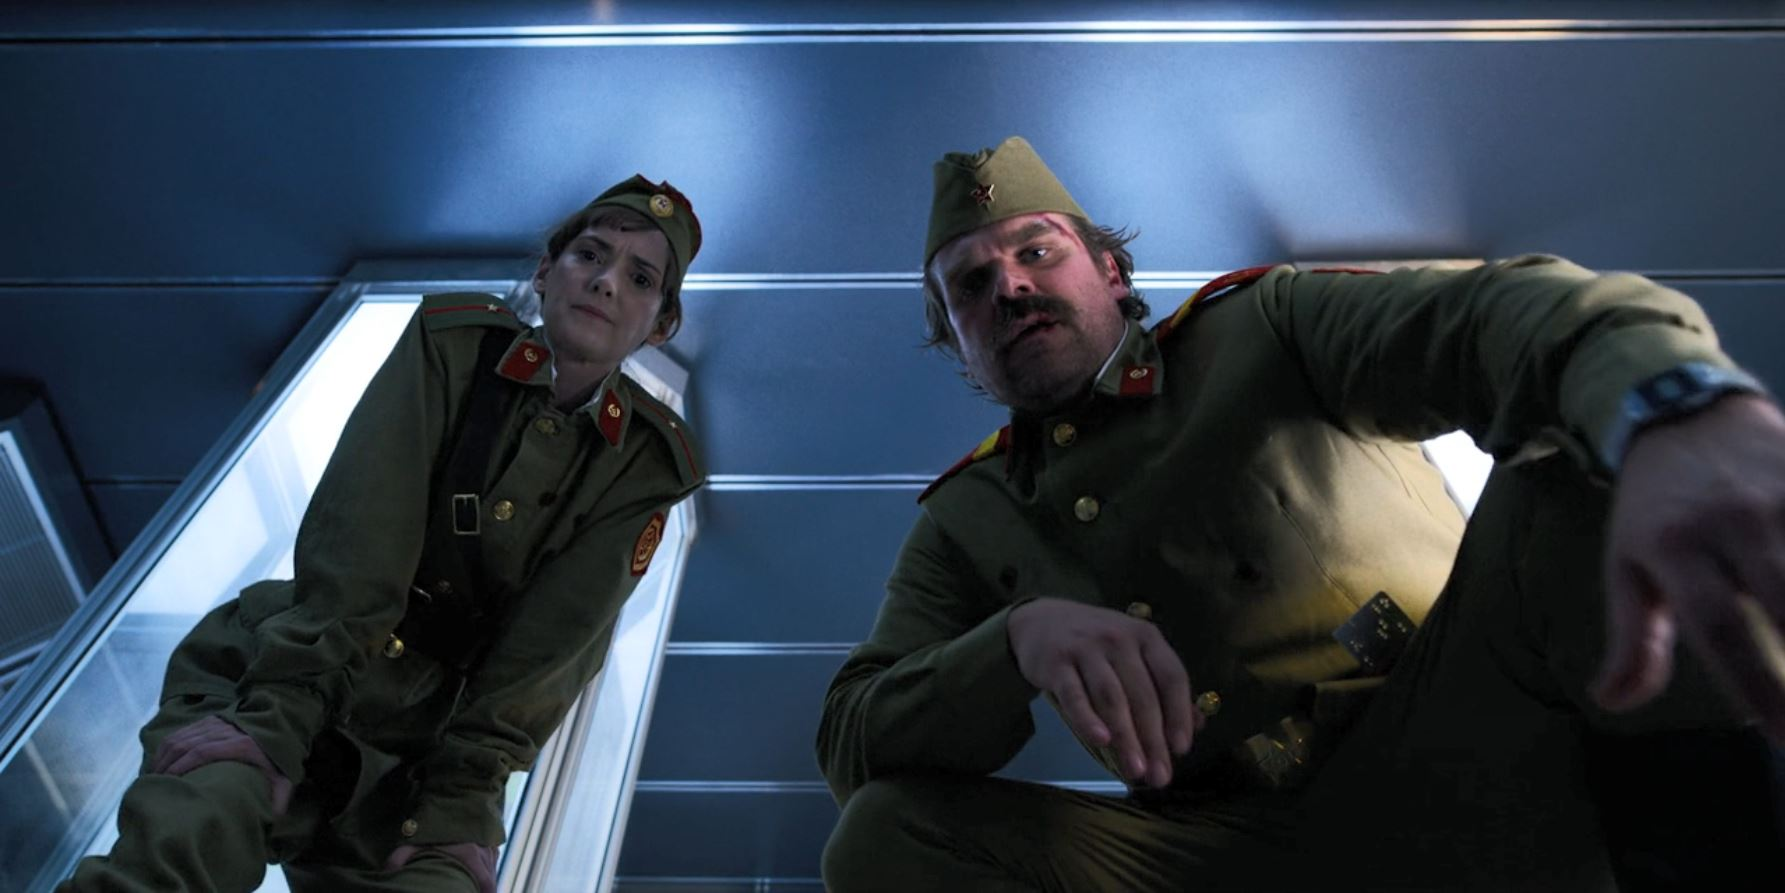 Stranger Things Season 3 Review - Jim and Joyce in Russian uniforms